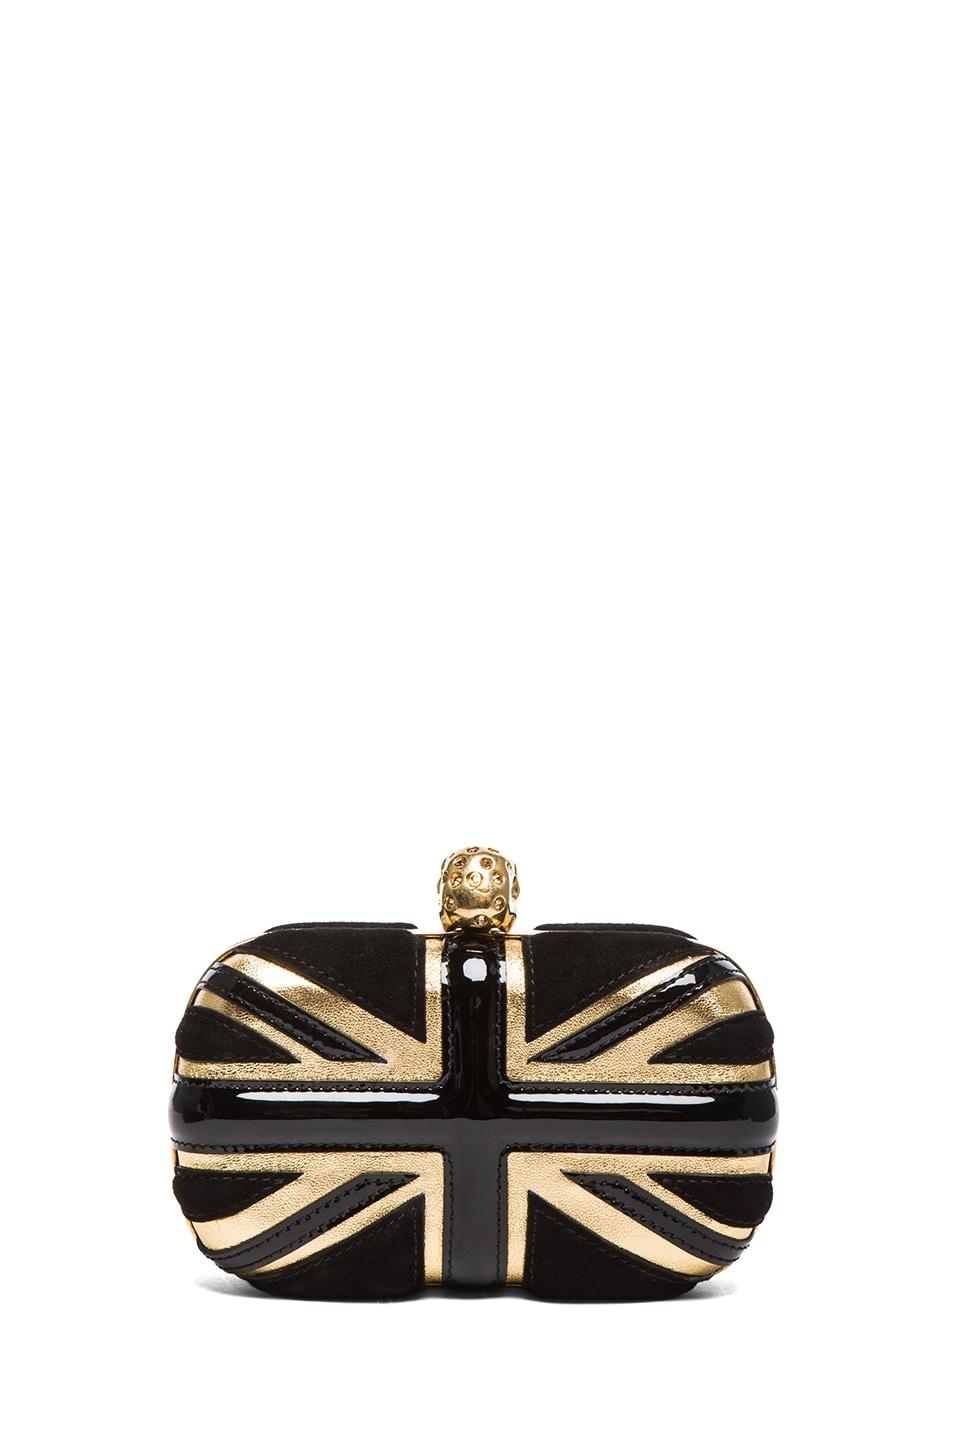 Image 2 of Alexander McQueen Britannia Skull Box Clutch in Gold & Black